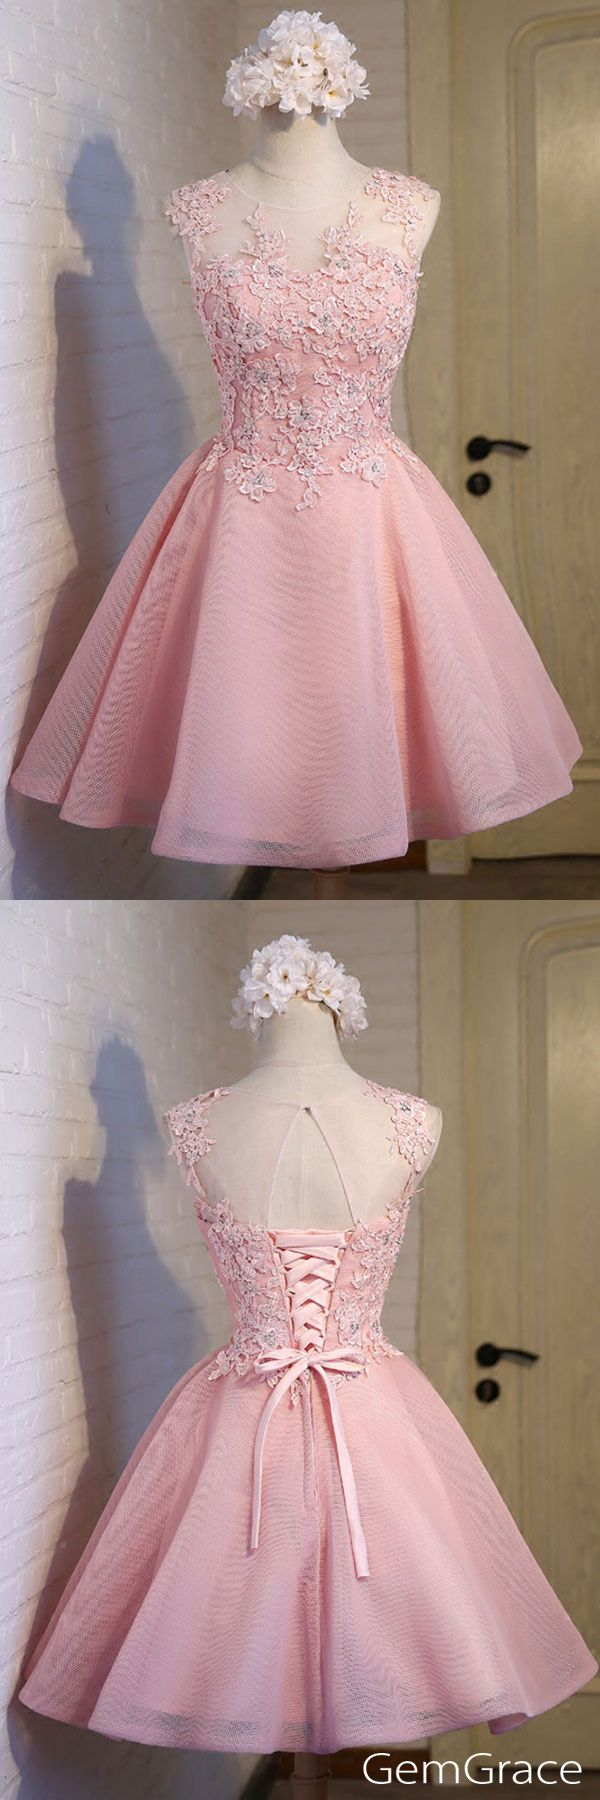 Peach pink homecoming dresses short tulle beautiful style with